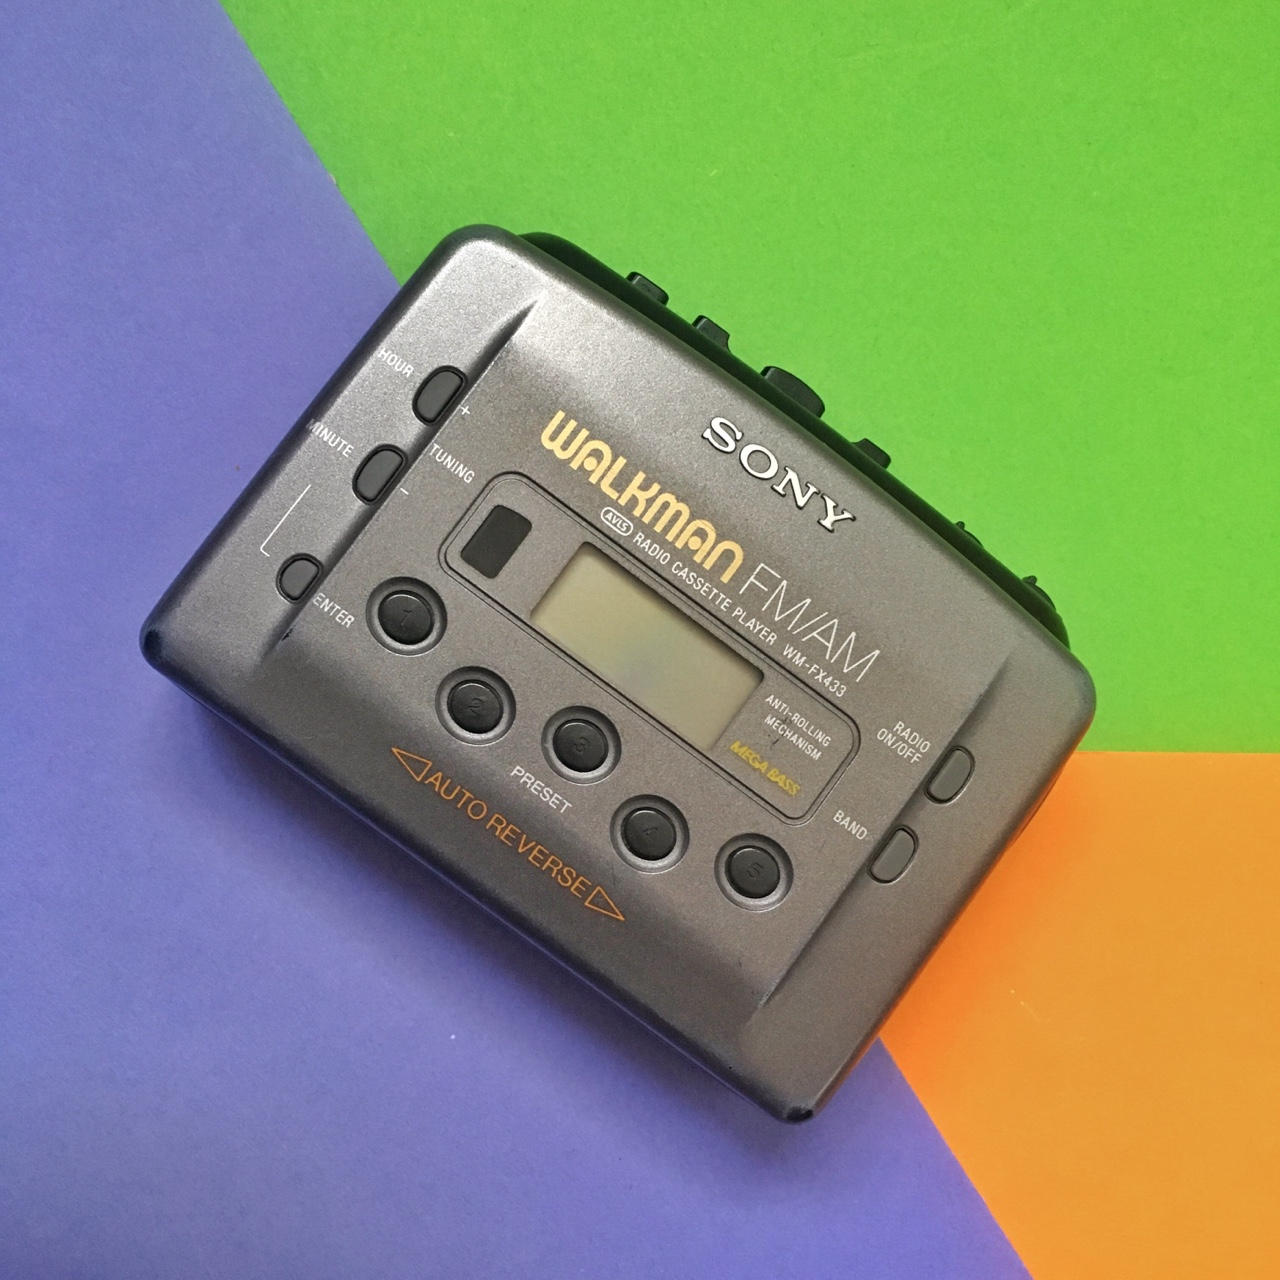 Vintage Sony Walkman cassette tape player  Bang in    - Depop